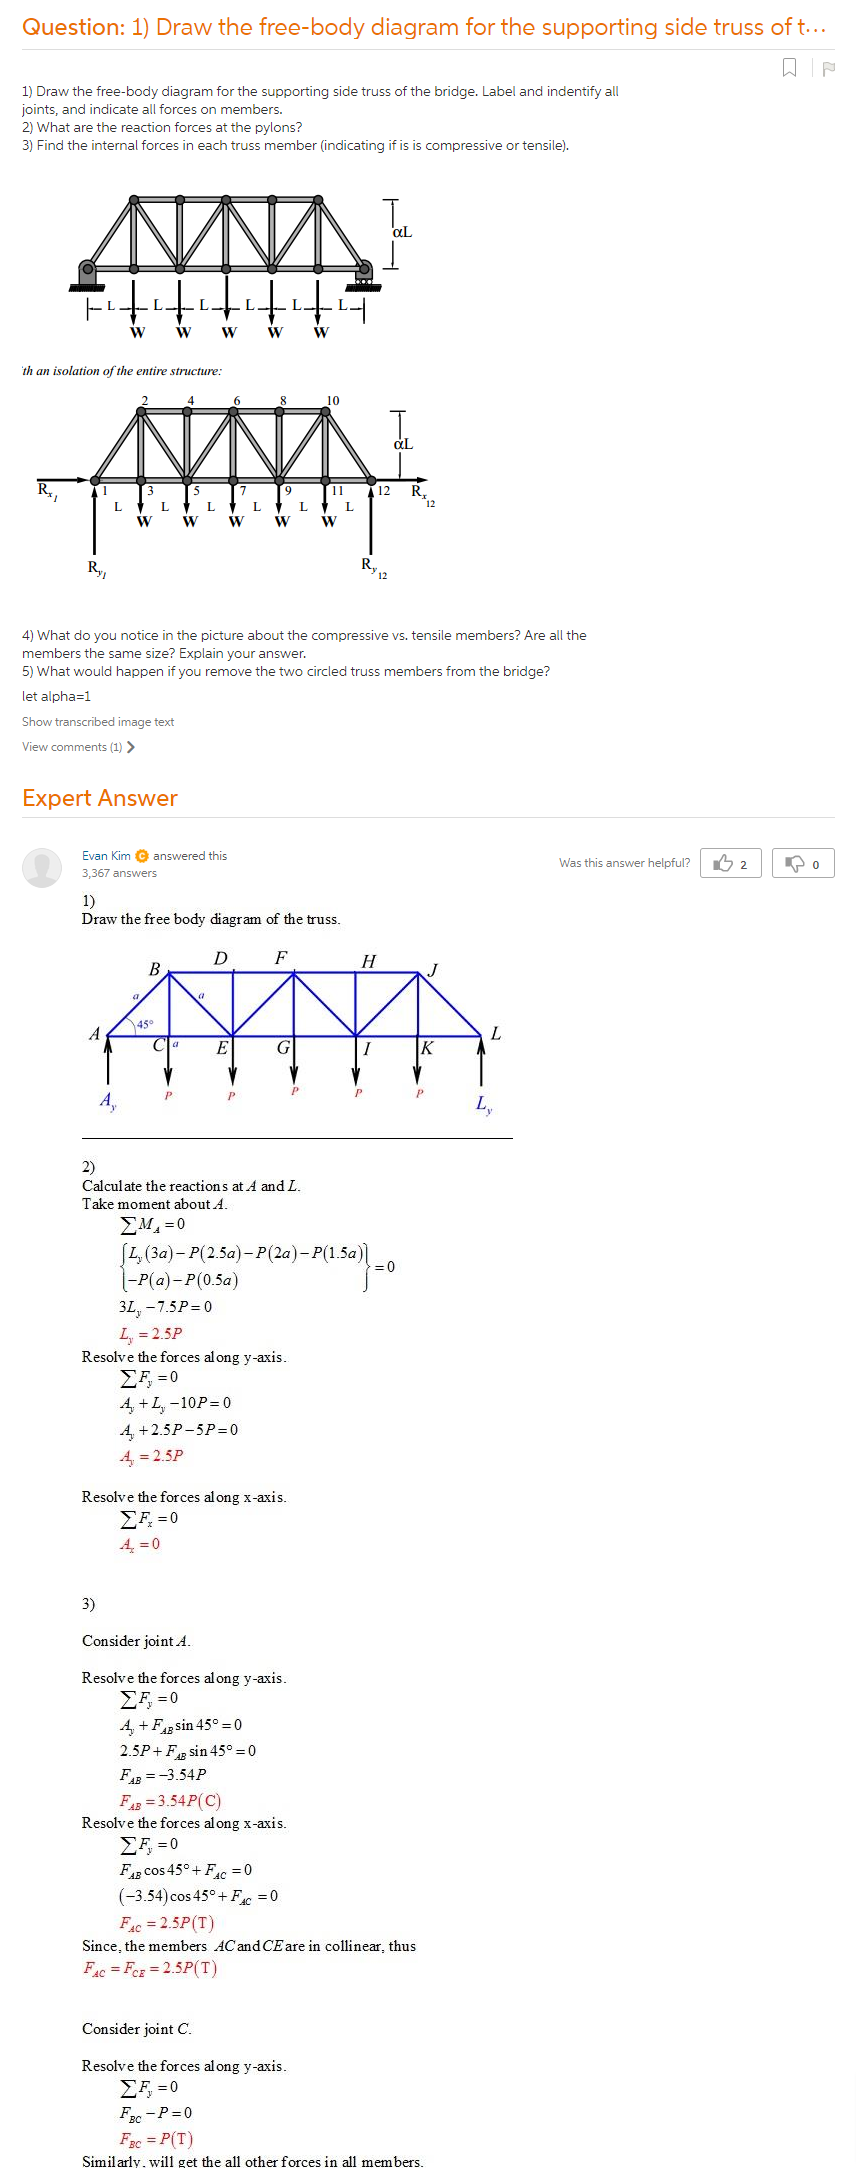 1) Draw The Free-body Diagram For The Supporting Side Truss Of The Bridge.  Label And Indentify All Joints, And Indicate All Forces On Members. 2) What  Are The Reaction Forces At The Pylons? 3) Find The Internal Forces In Each  Truss Member (indicating If Is Is Compressive Or Tensile). 4) What Do You  Notice In The Picture About The Compressive Vs. Tensile ...